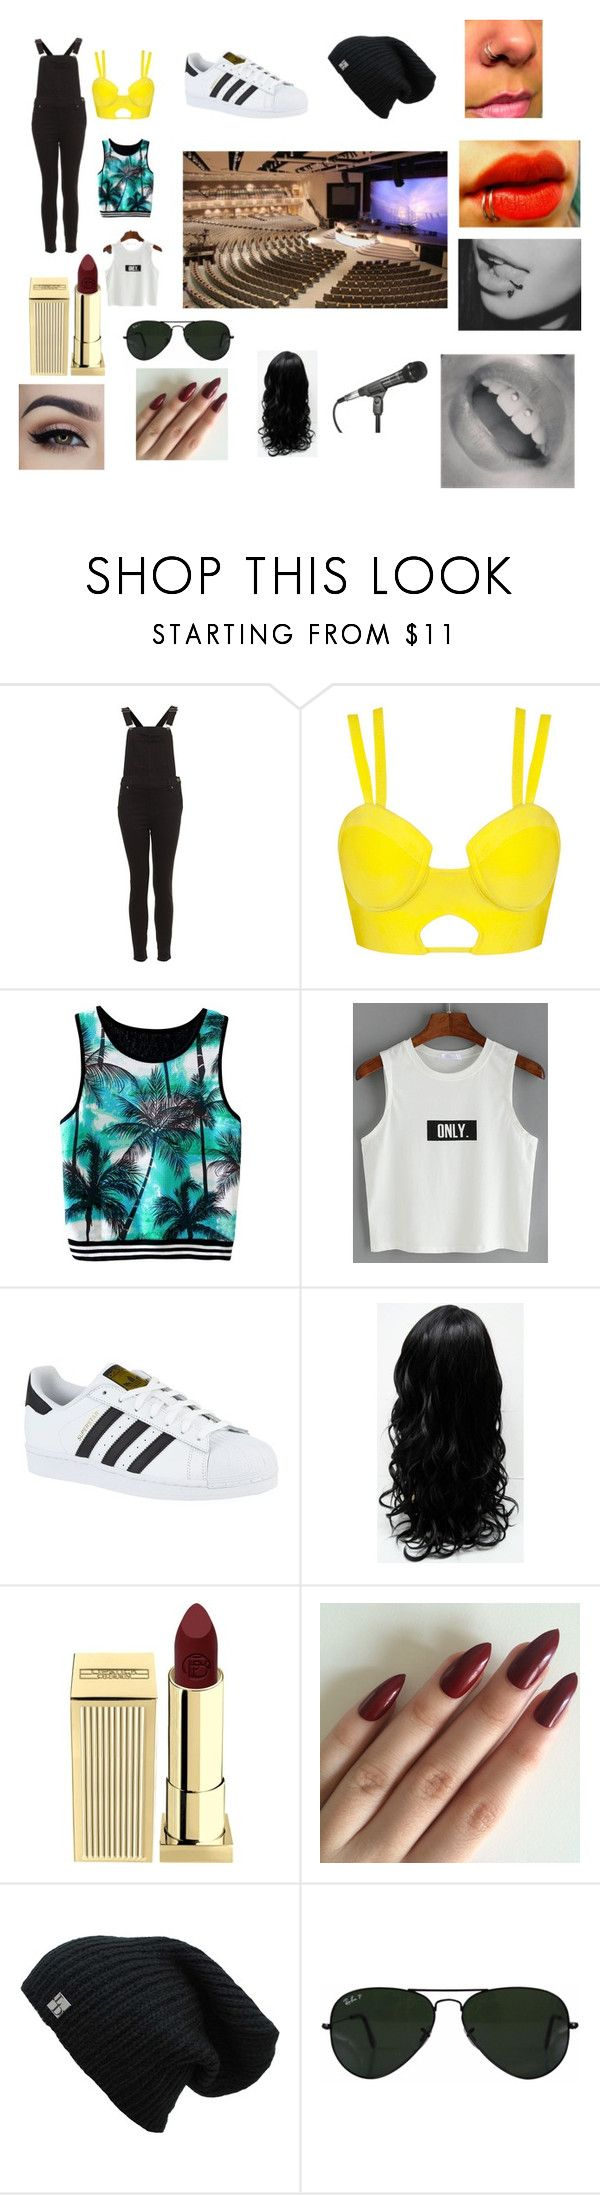 """No scrubs"" by natykpop ❤ liked on Polyvore featuring adidas, Lipstick Queen and Ray-Ban"